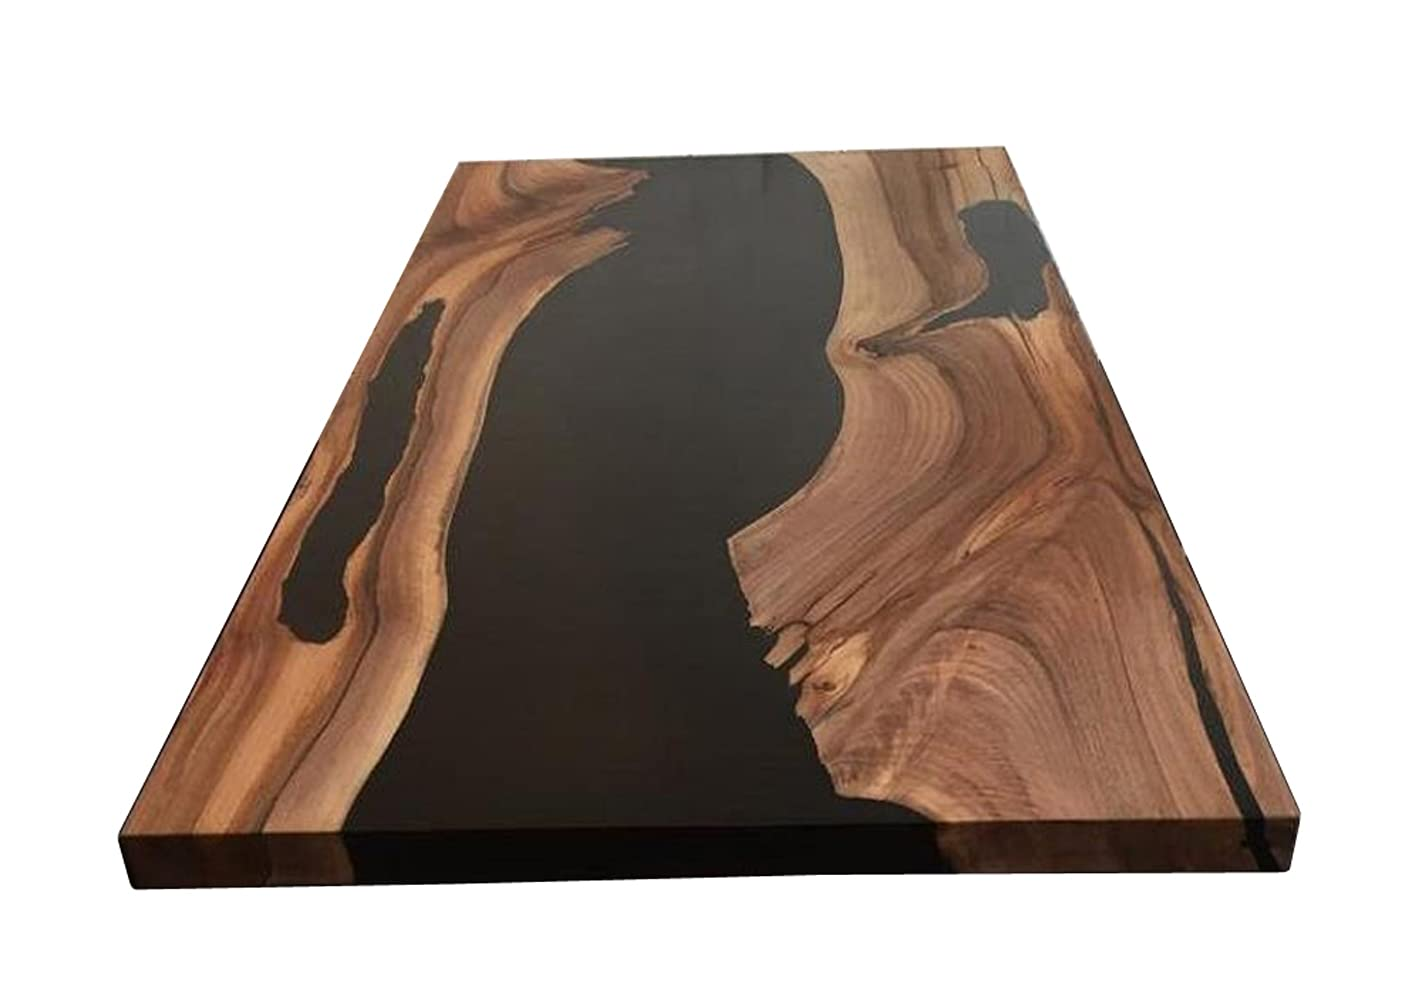 Epoxy Great interest Table Live Edge Resin Na Ranking integrated 1st place Wooden River